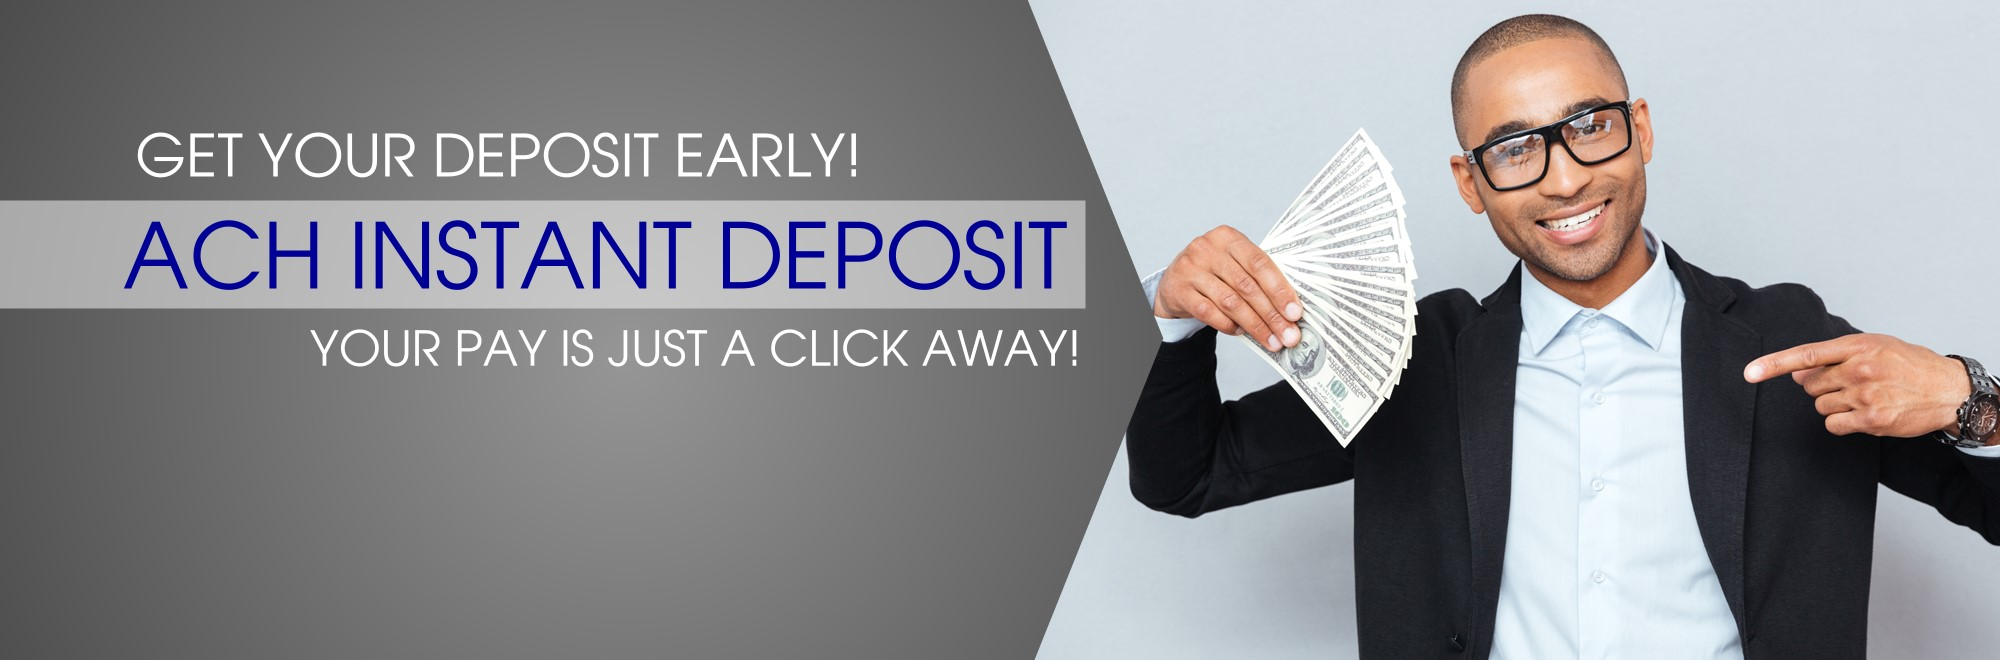 Get your deposit early. ACH Instant Deposit. Your pay is just a click away.